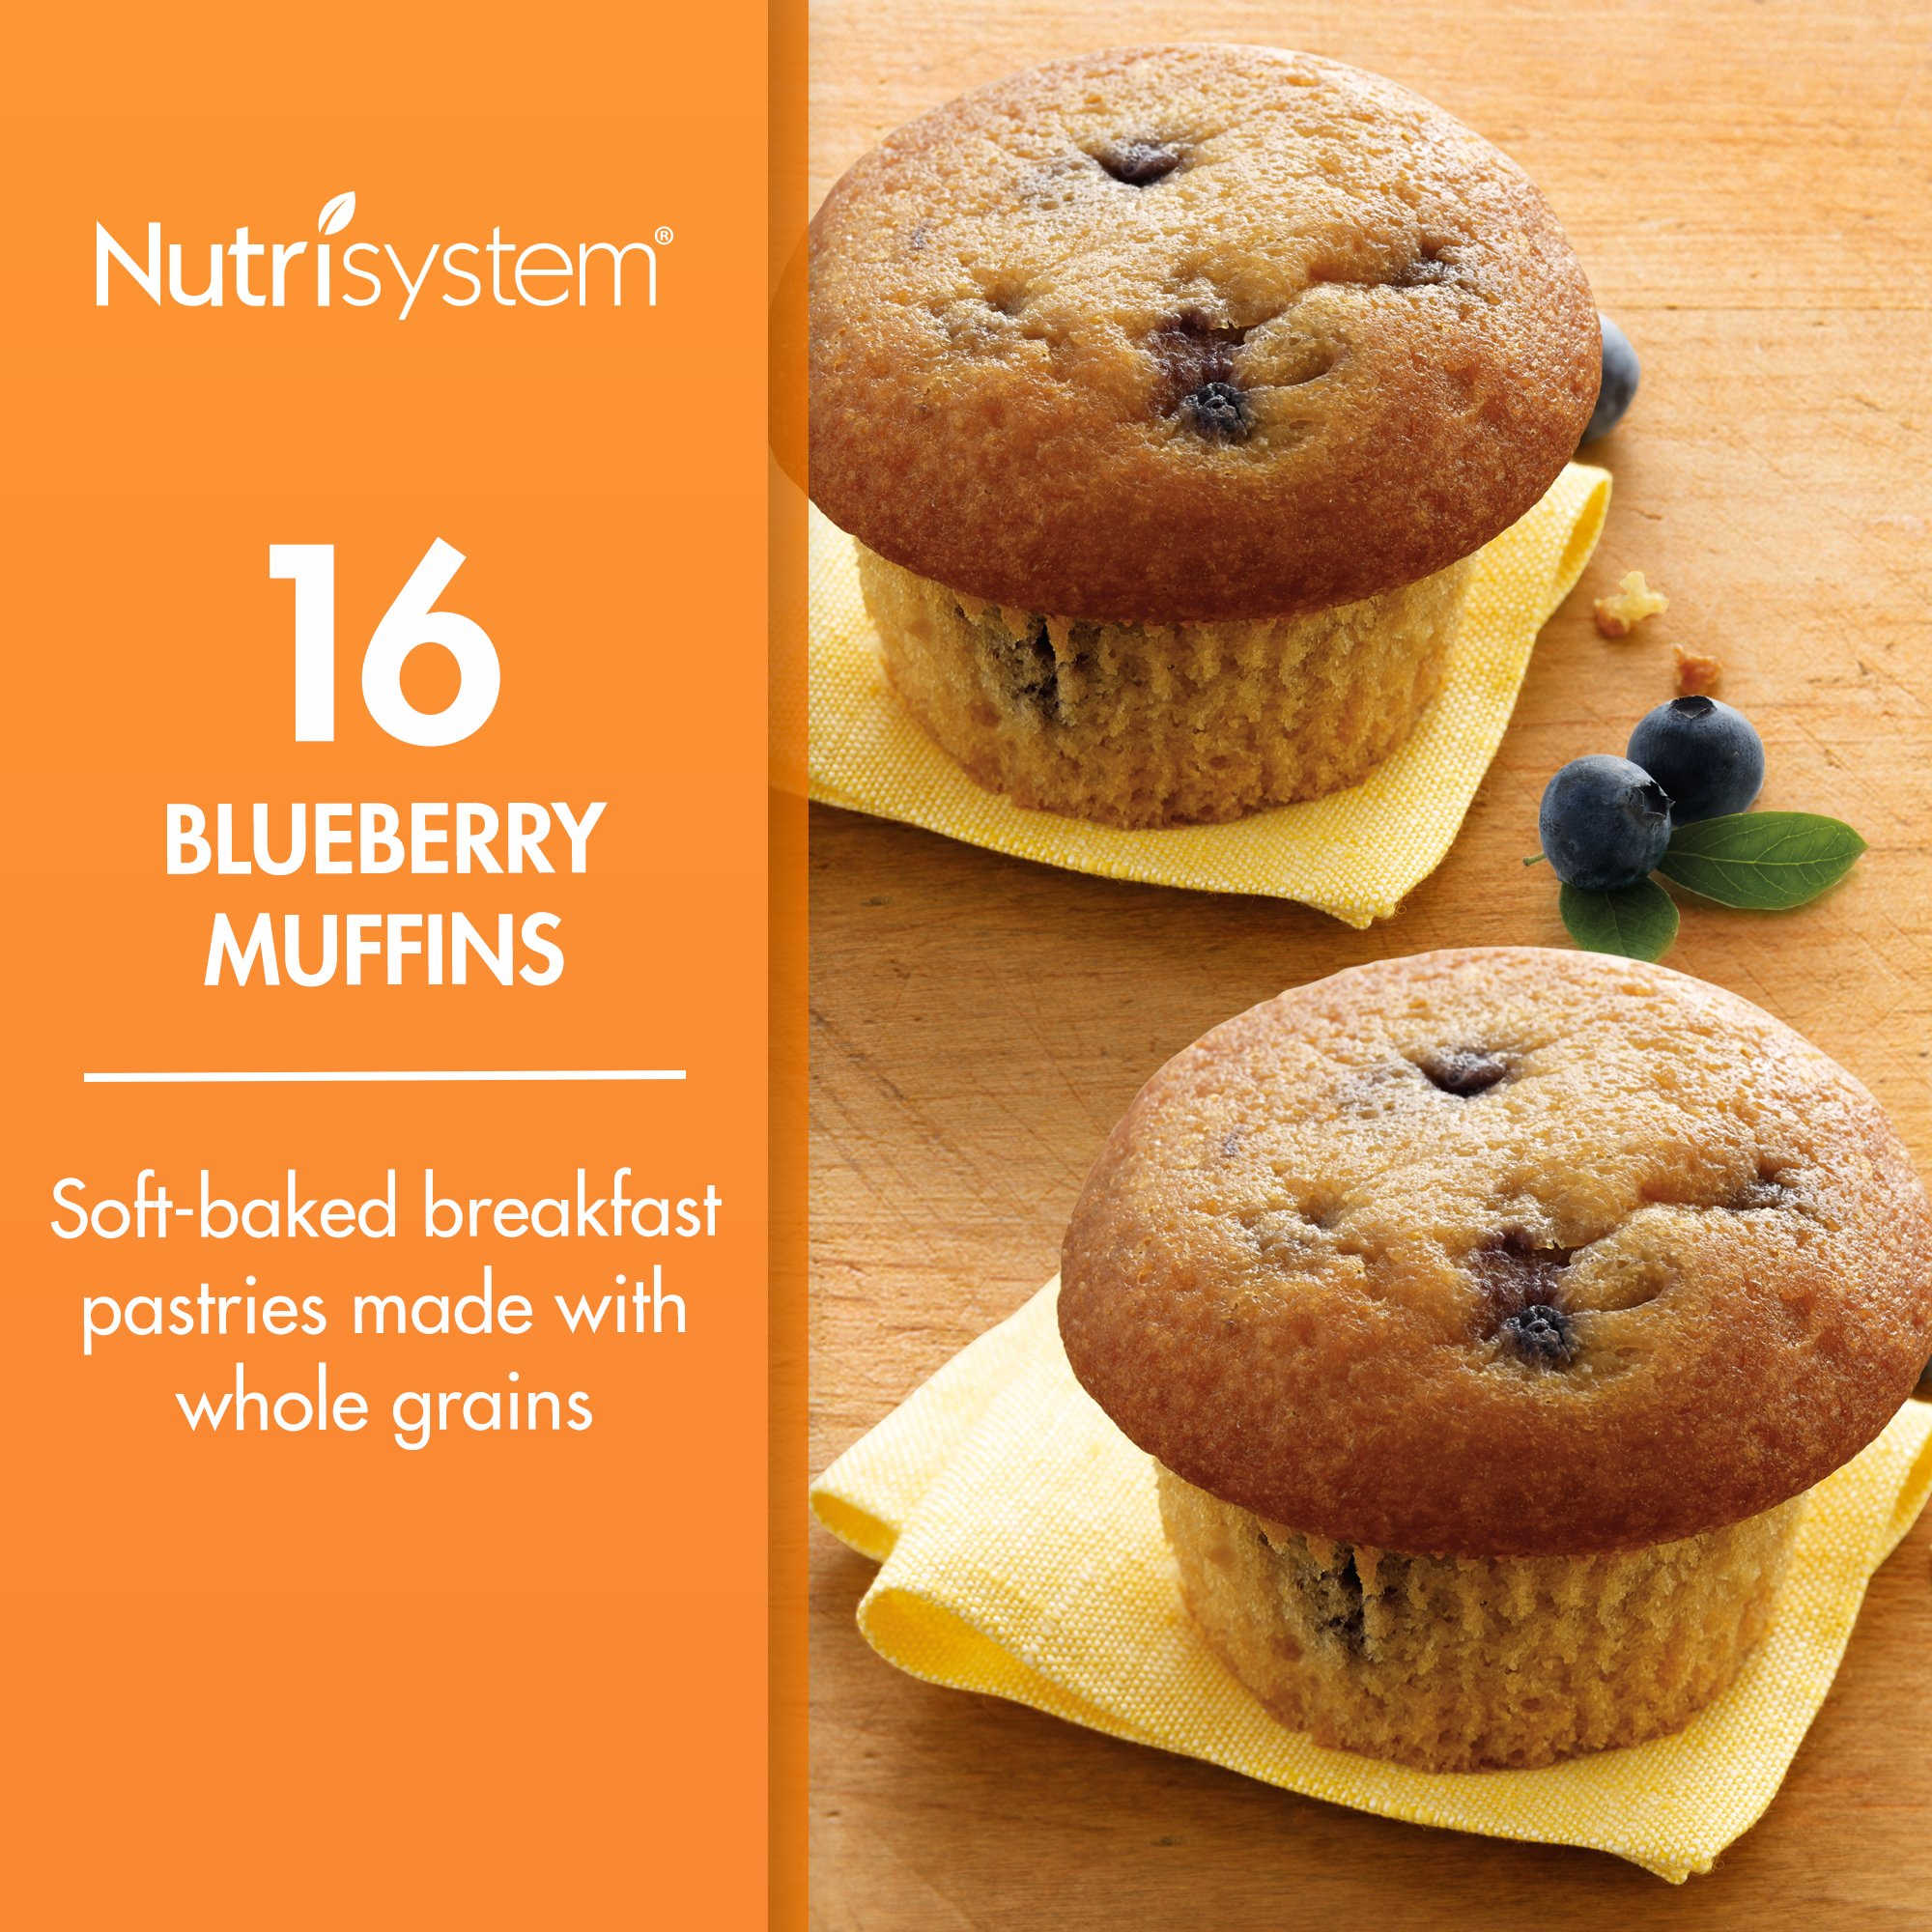 Nutrisystem Blueberry Muffins, 16 ct